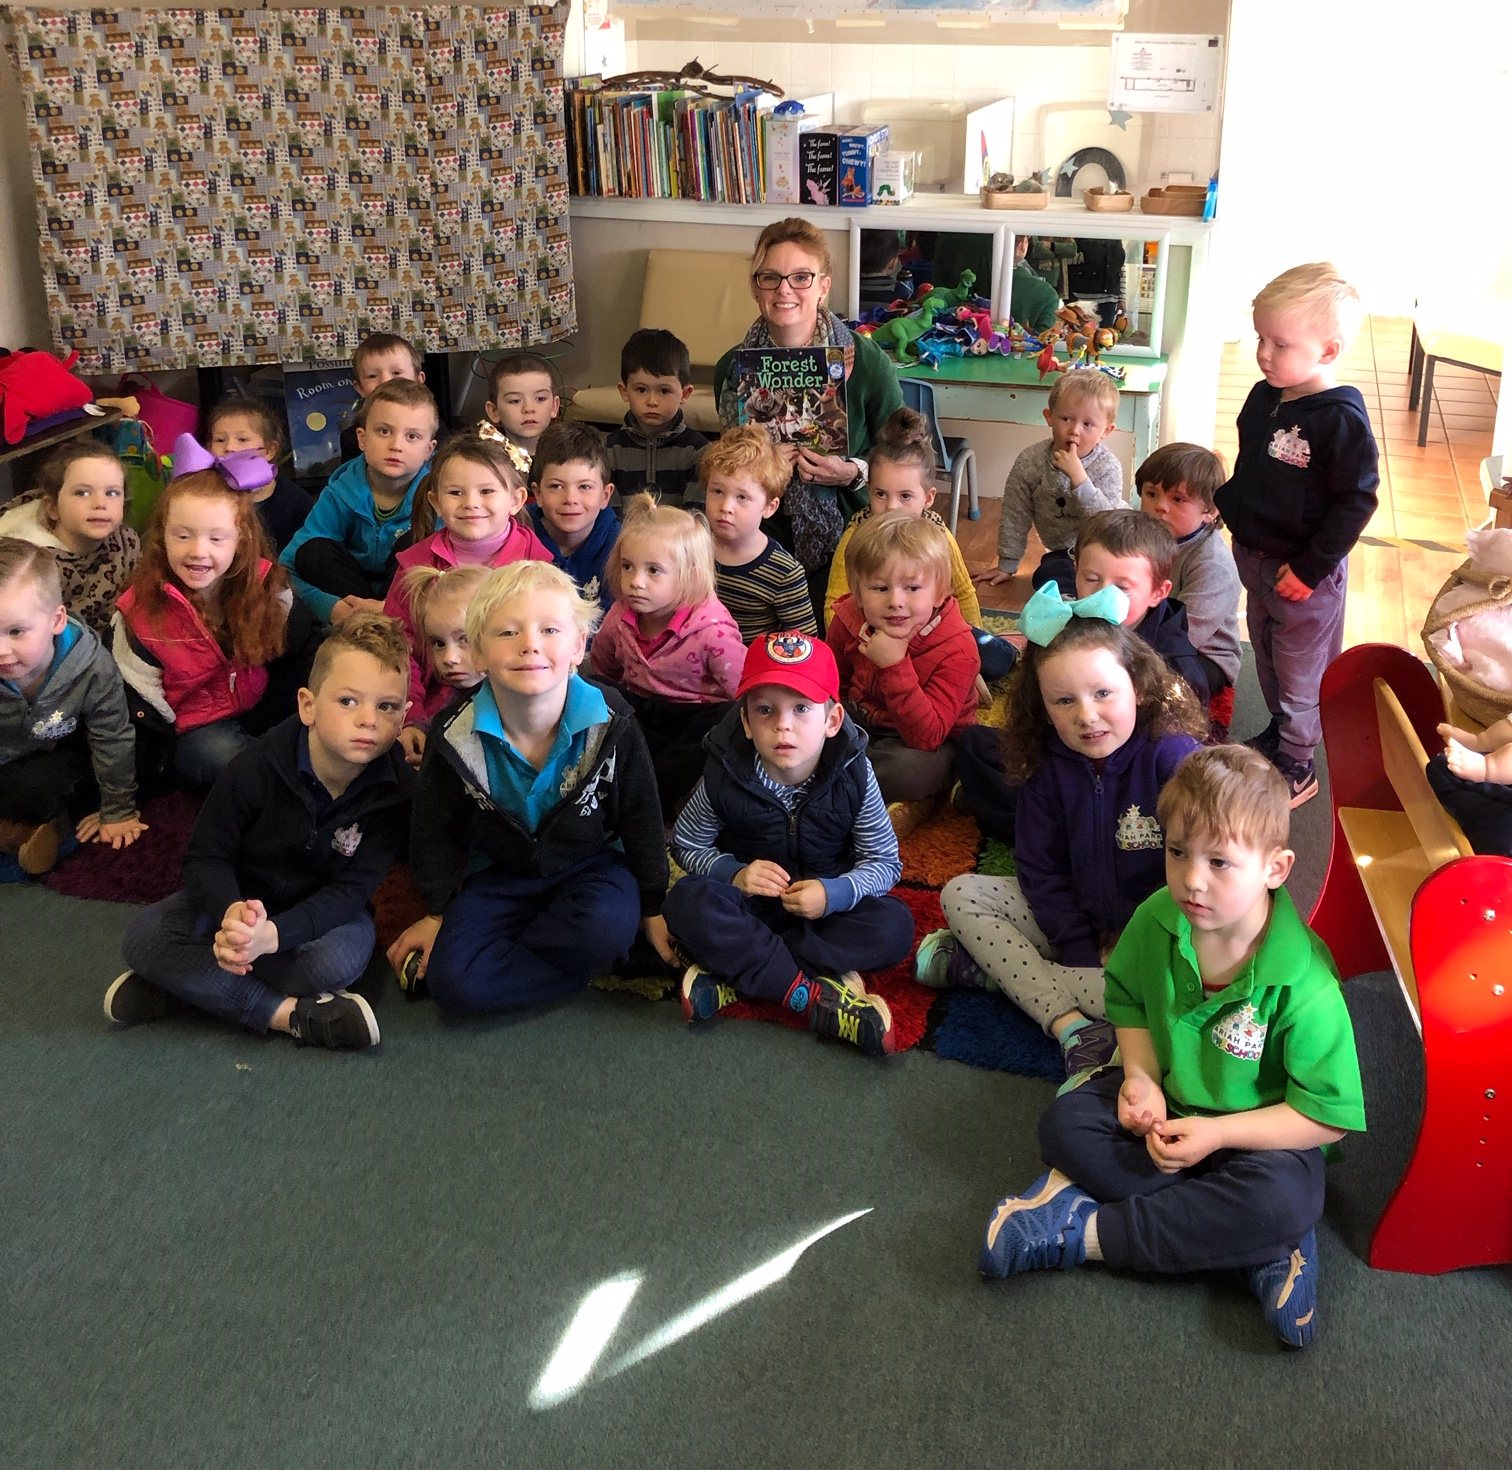 Steph Cooke sits amongst a large group of preschool students. They all look at the camera and smile. Steph is holding a picture book.